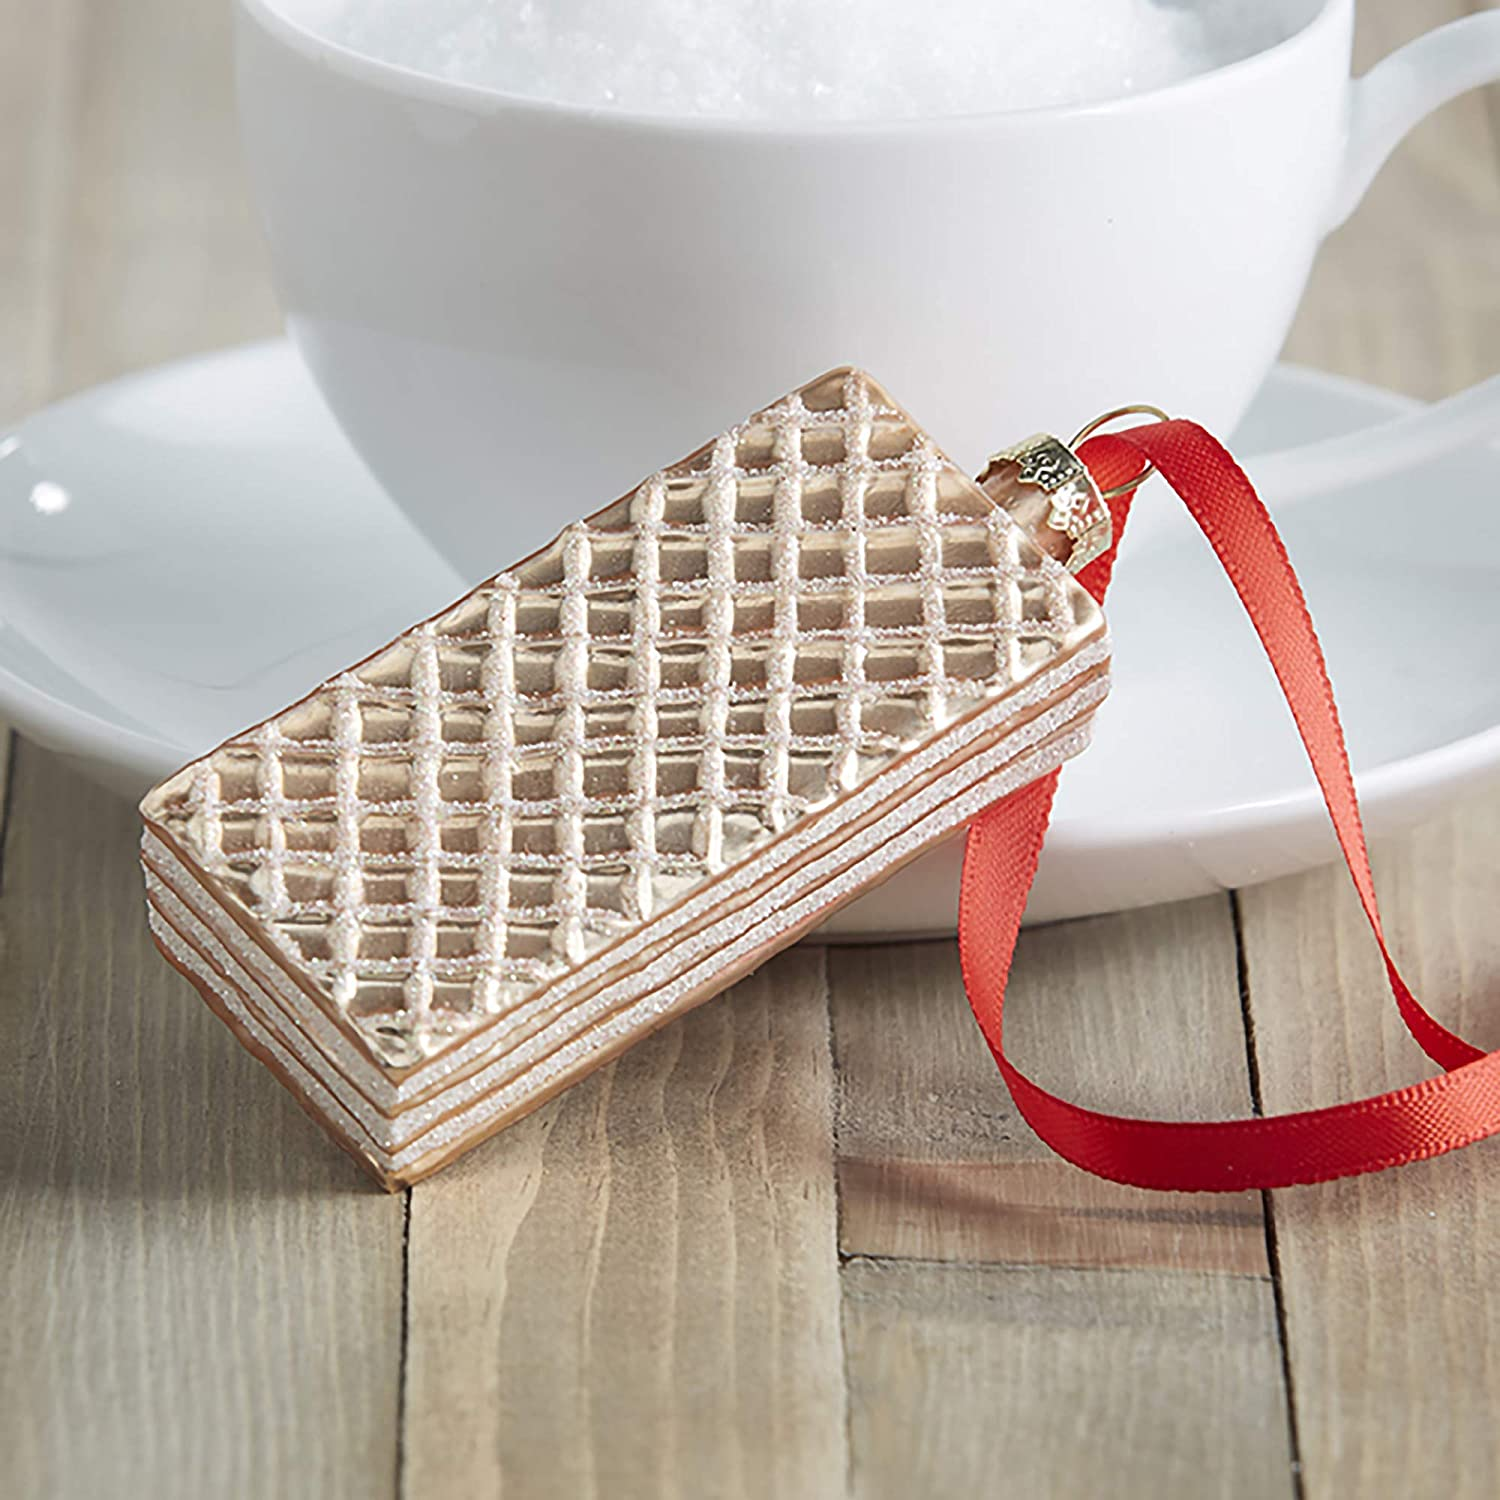 Wafer Cookie Glass Ornament